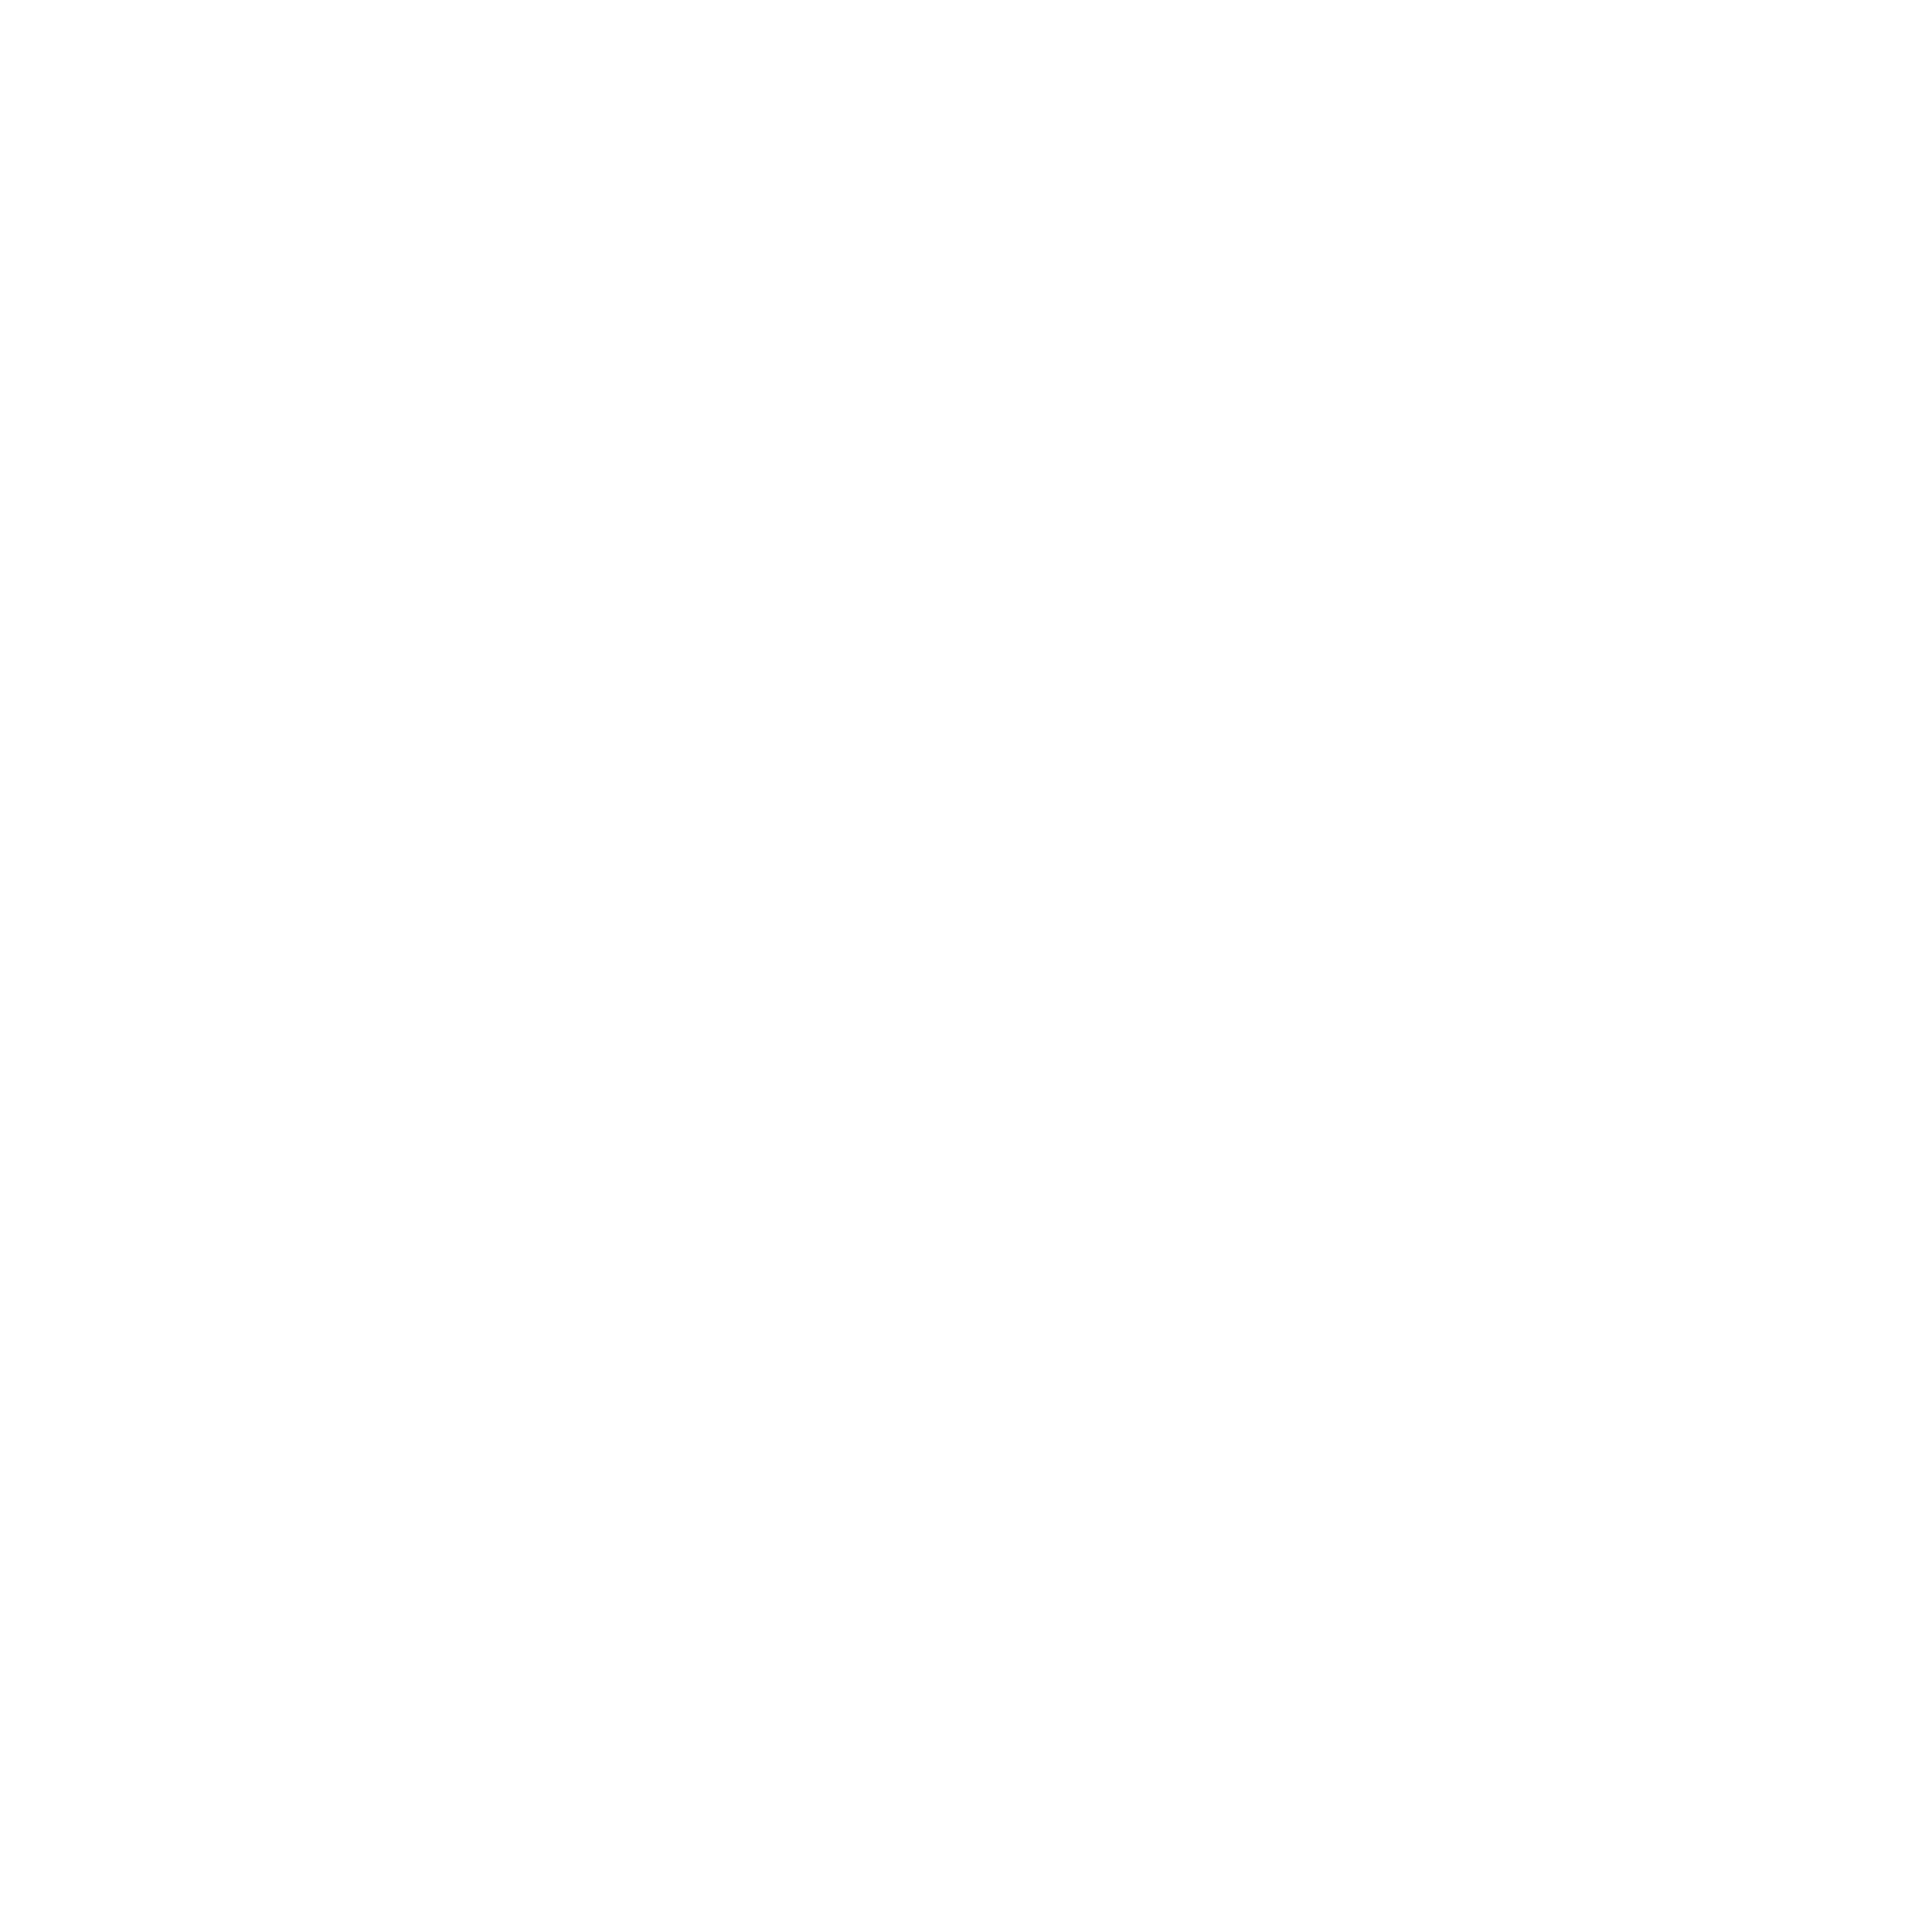 Forever project logo